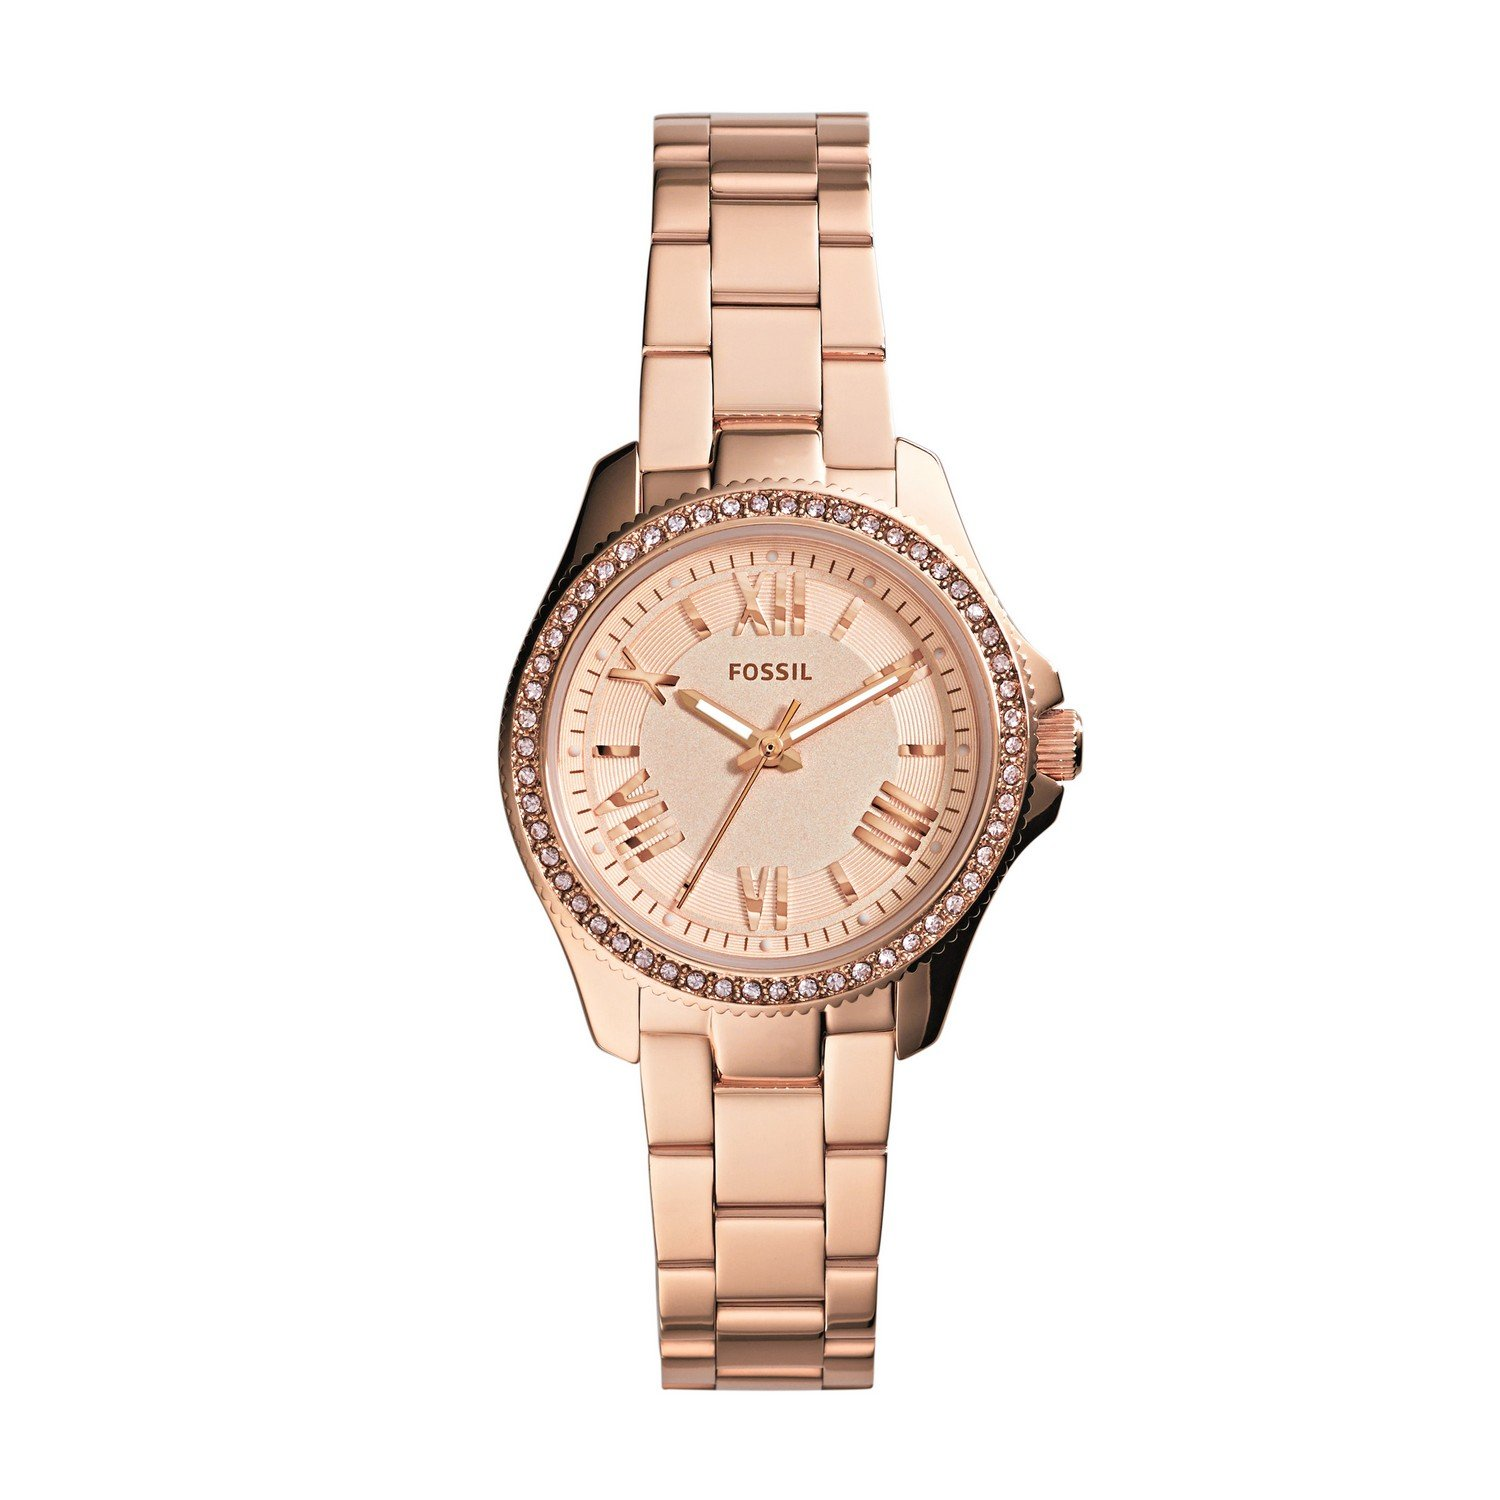 d3e88b893aed Amazon.com  Fossil Women s AM4578 Cecile Small Rose Gold-Tone Stainless  Steel Watch  Fossil  Watches